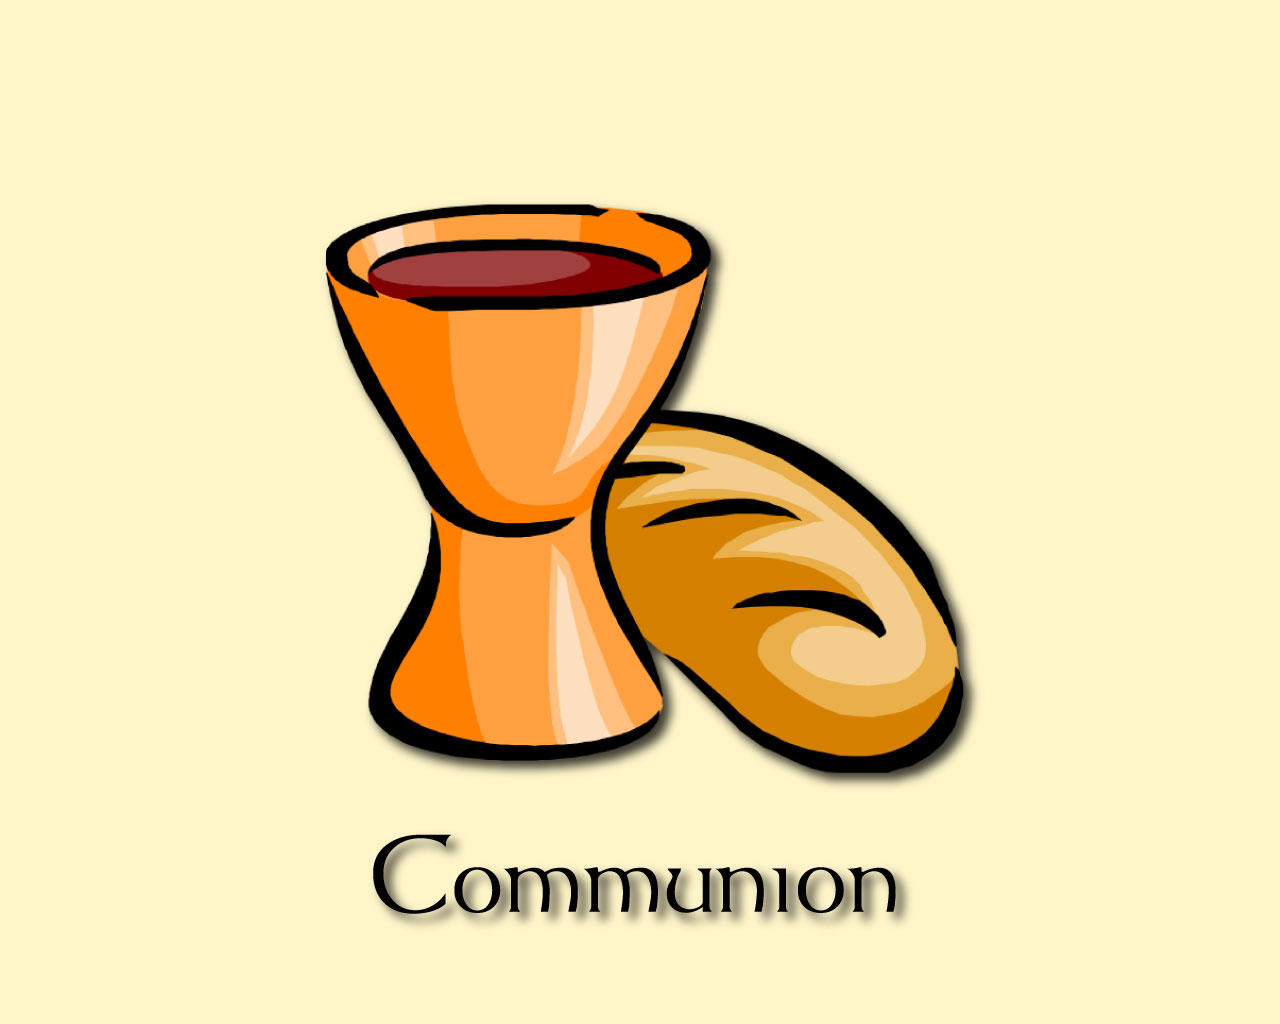 Clip Art Communion Clipart baptist holy communion clipart kid images free cliparts that you can download to